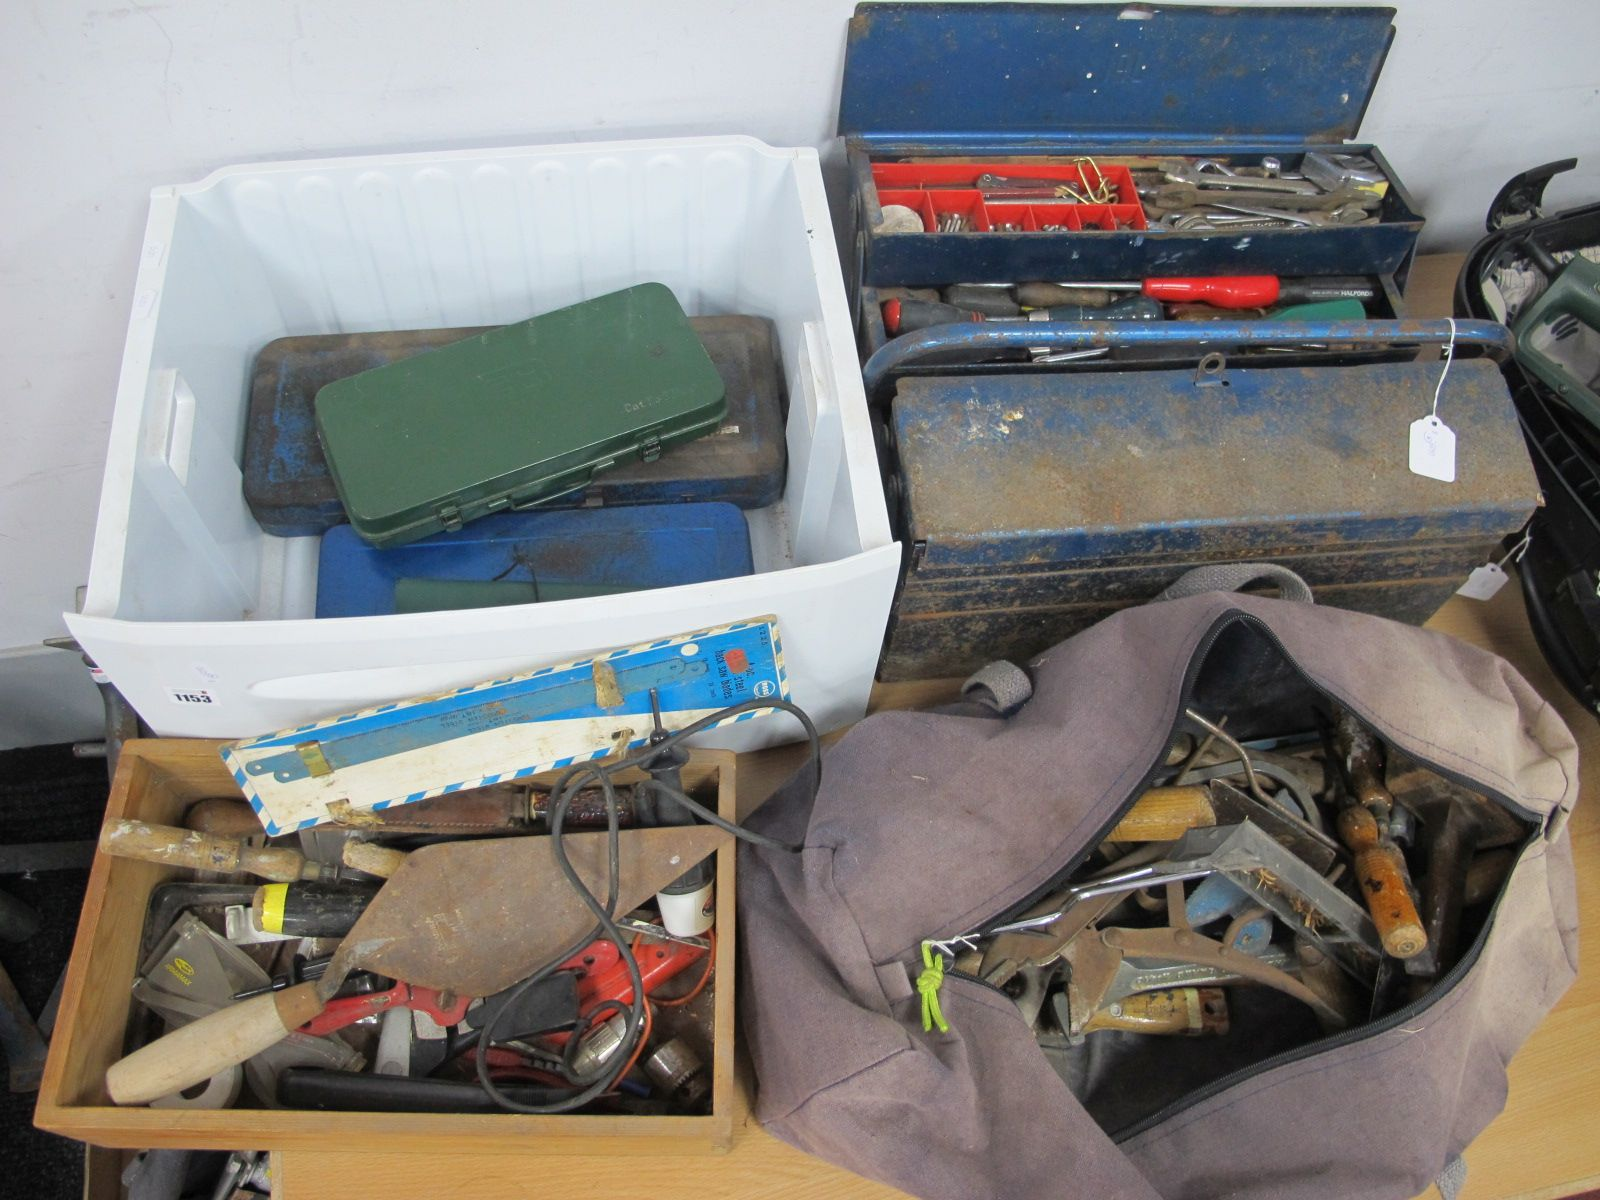 Elora, Domico & Beale Socket Sets, spanners, mallet, other tools, metal carry case.